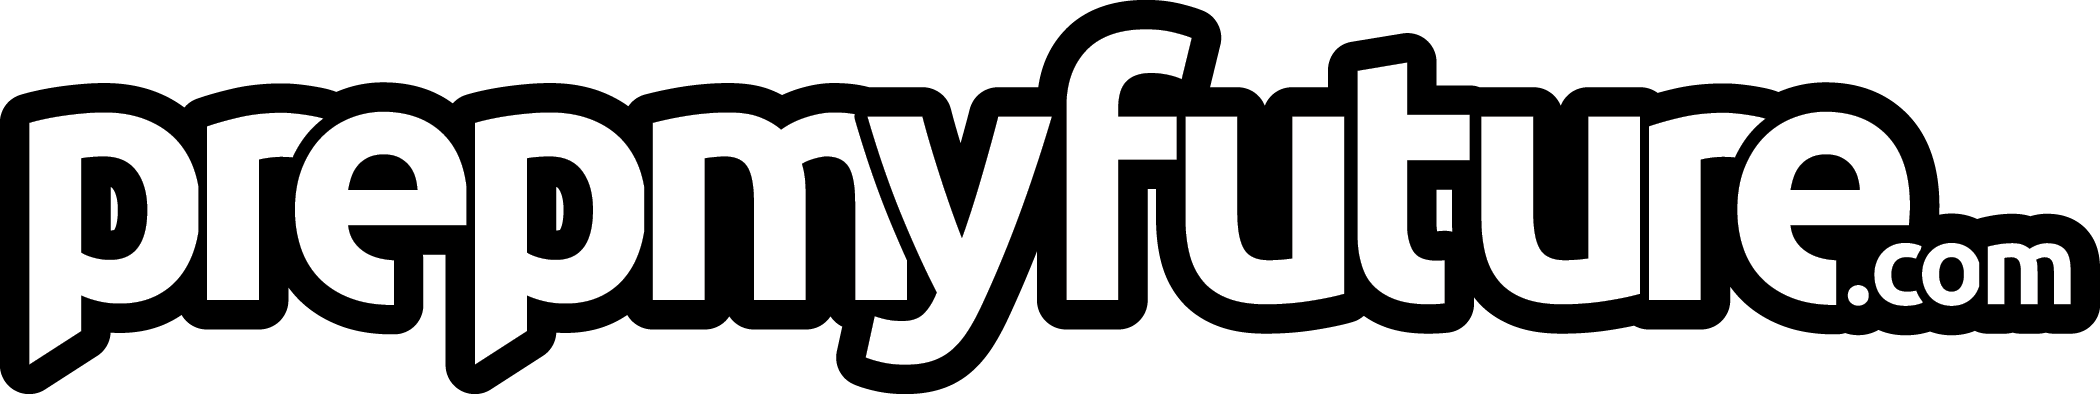 Logo prepmyfuture hd